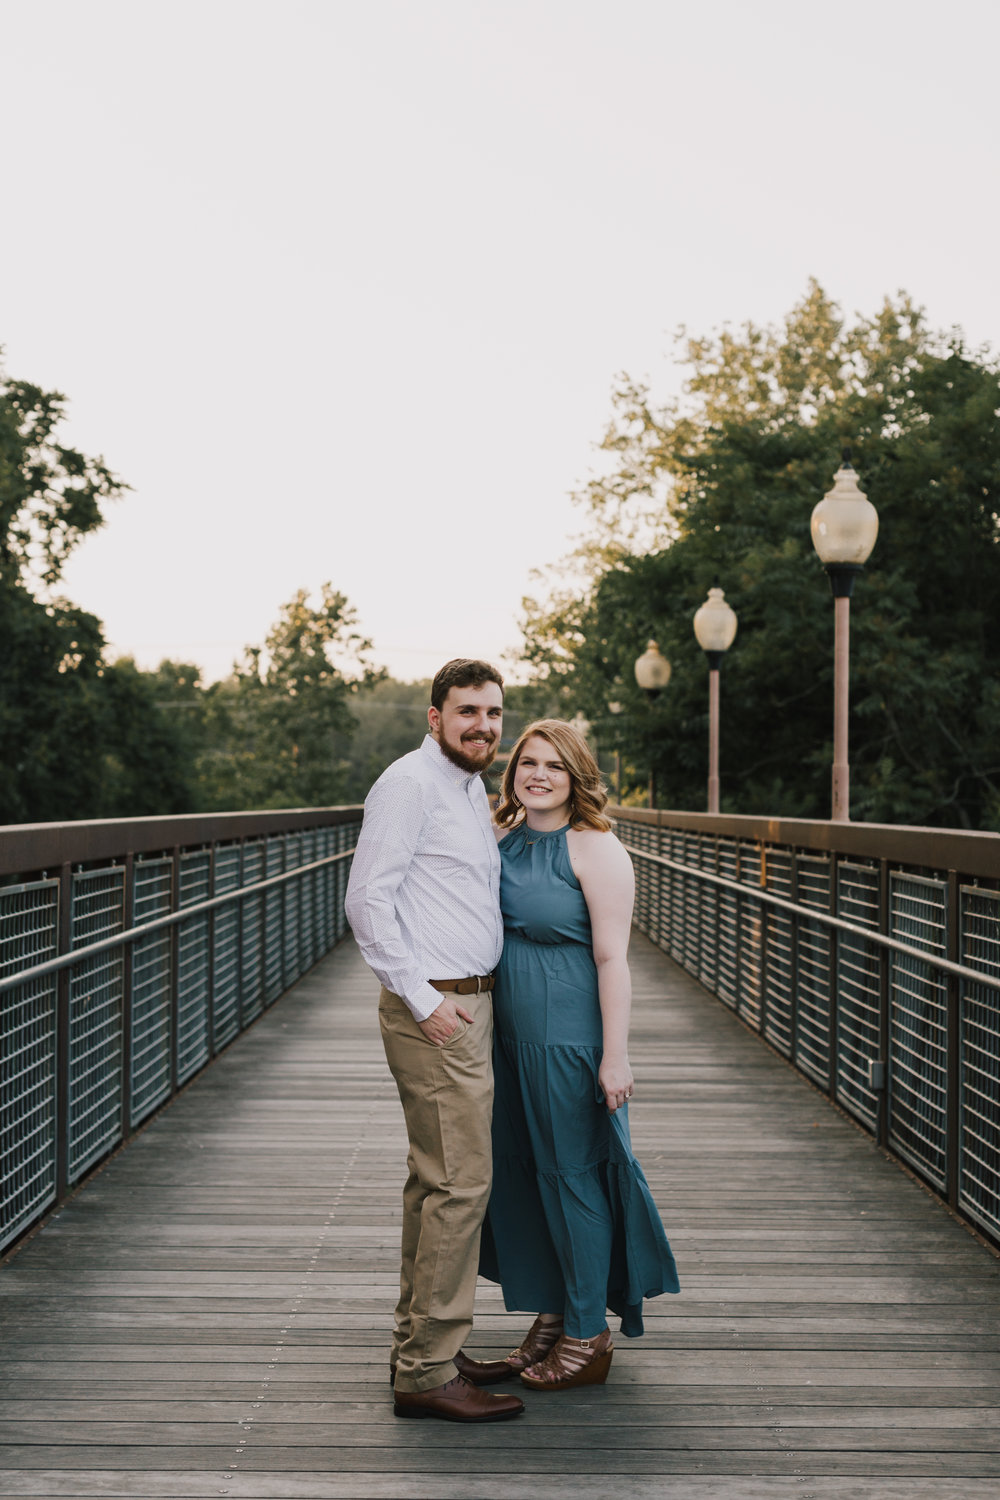 alyssa barletter photography river market kansas city kcmo kc engagement photos summer-17.jpg